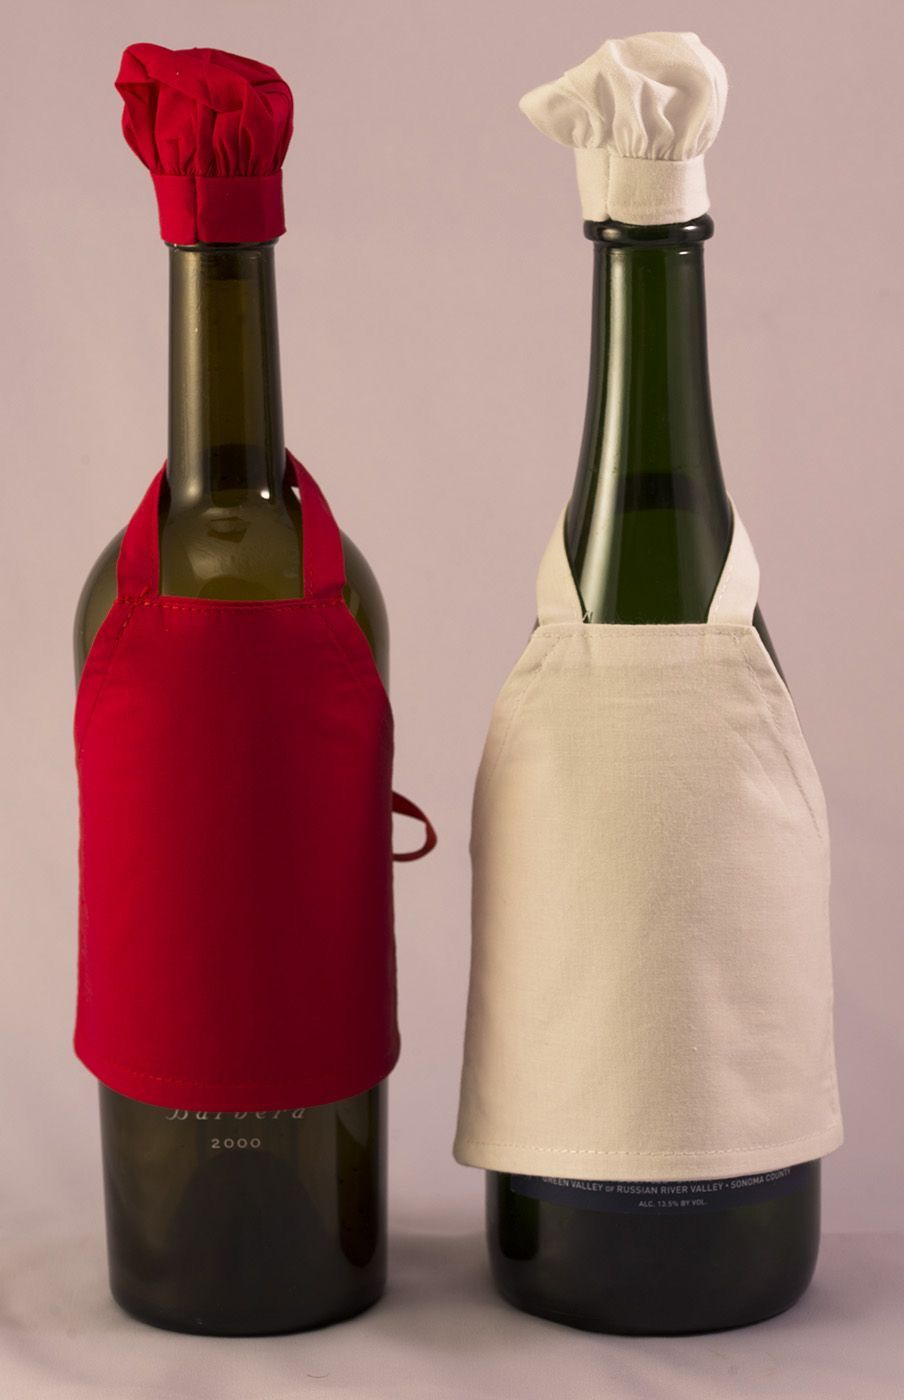 Pin By Kim Hoffman On Crafts In 2020 Free Machine Embroidery Designs Free Machine Embroidery Wine Bottle